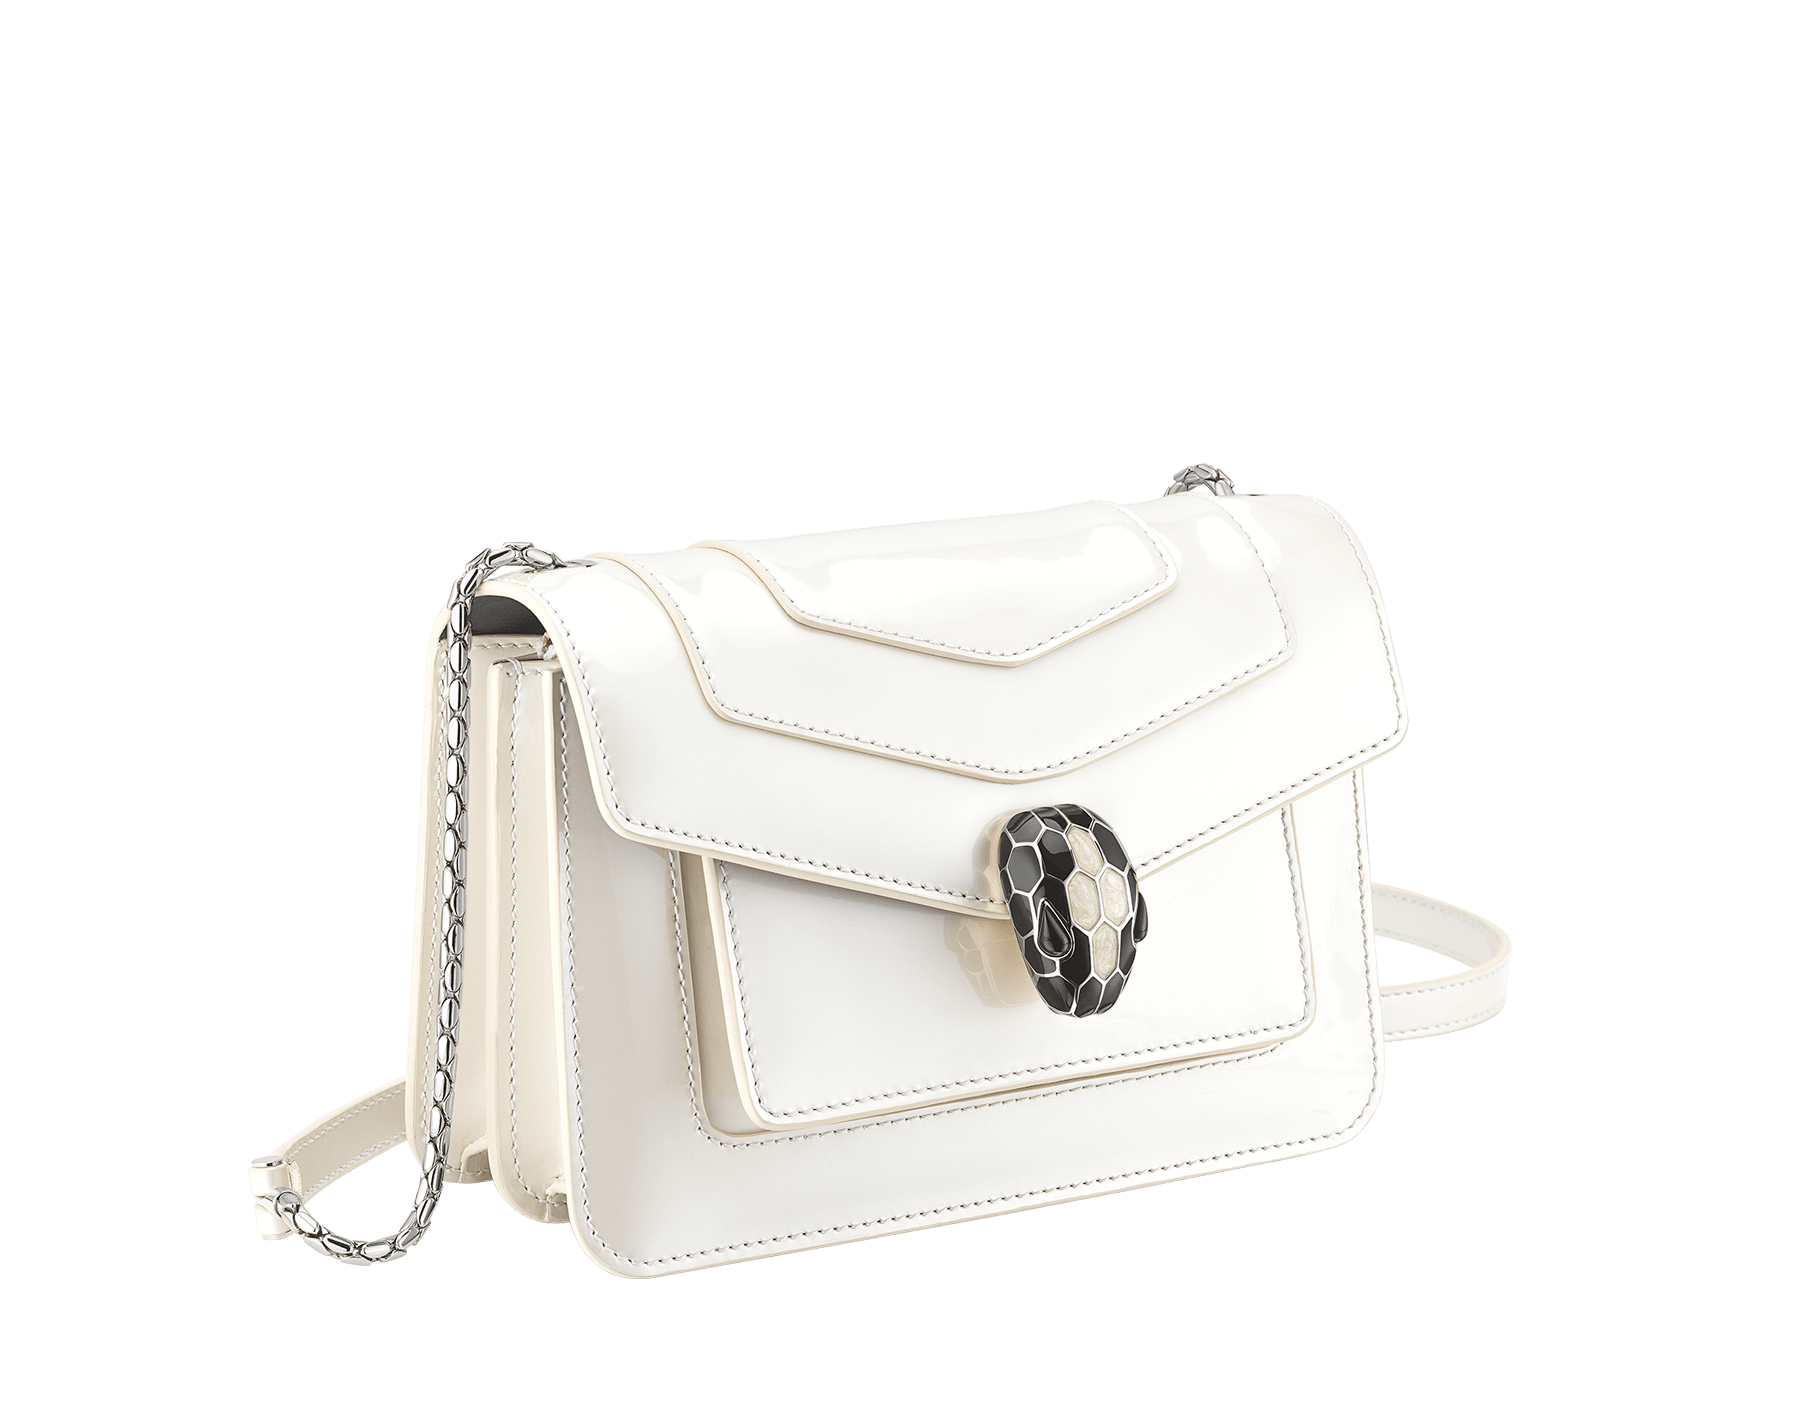 """Serpenti Forever"" crossbody bag in white agate calf leather with a varnished and pearled effect. Iconic snakehead closure in light gold plated brass enriched with black and pearled white agate enamel and black onyx eyes. 289771 image 2"